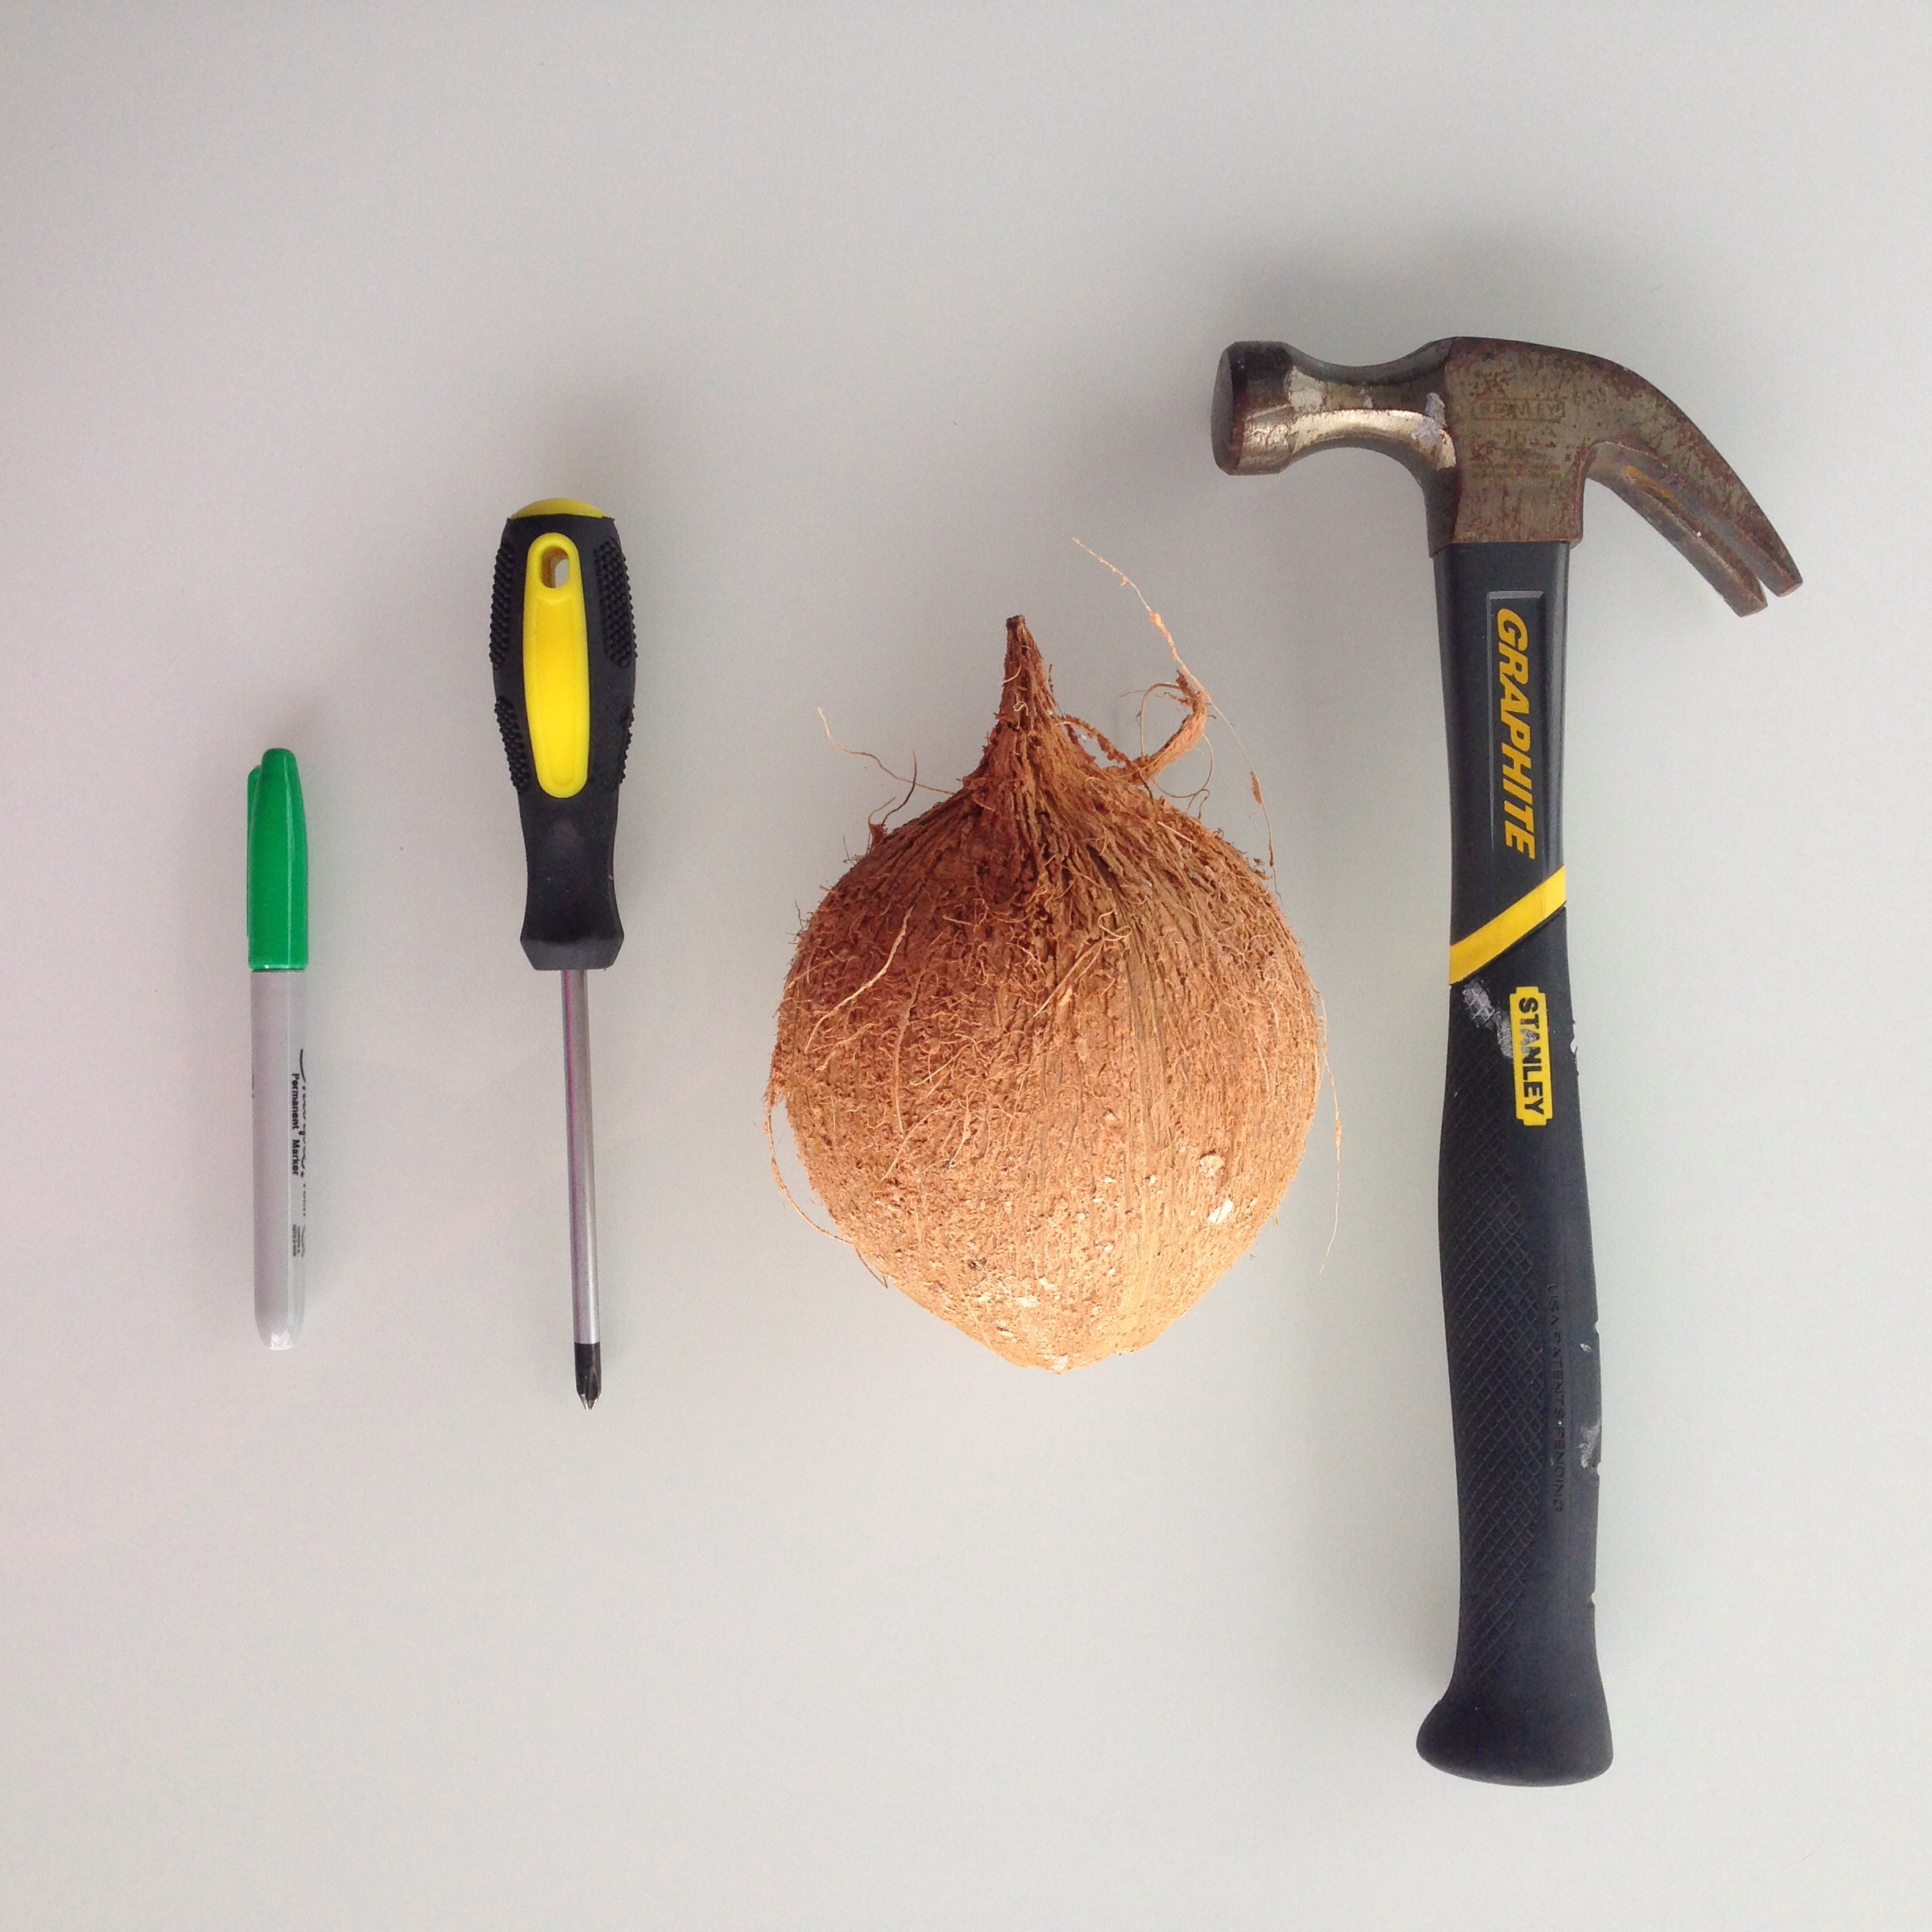 You will need a coconut, a hammer, a screwdriver, and a marker/pencil